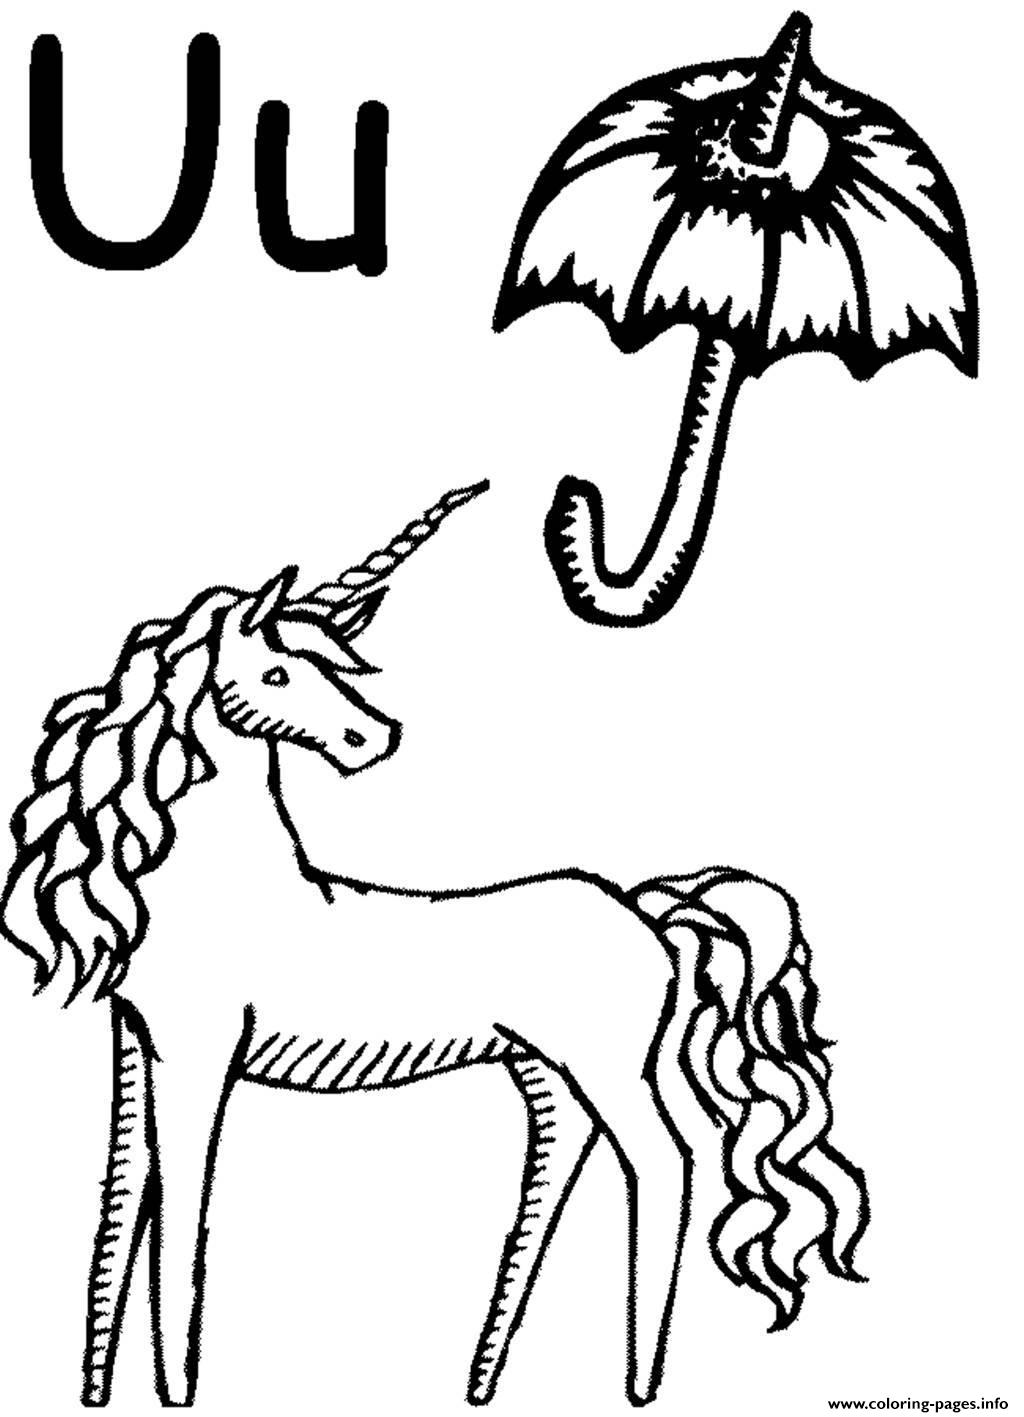 Unicorn And Umbrella Alphabet S Free Coloring Pages Printable